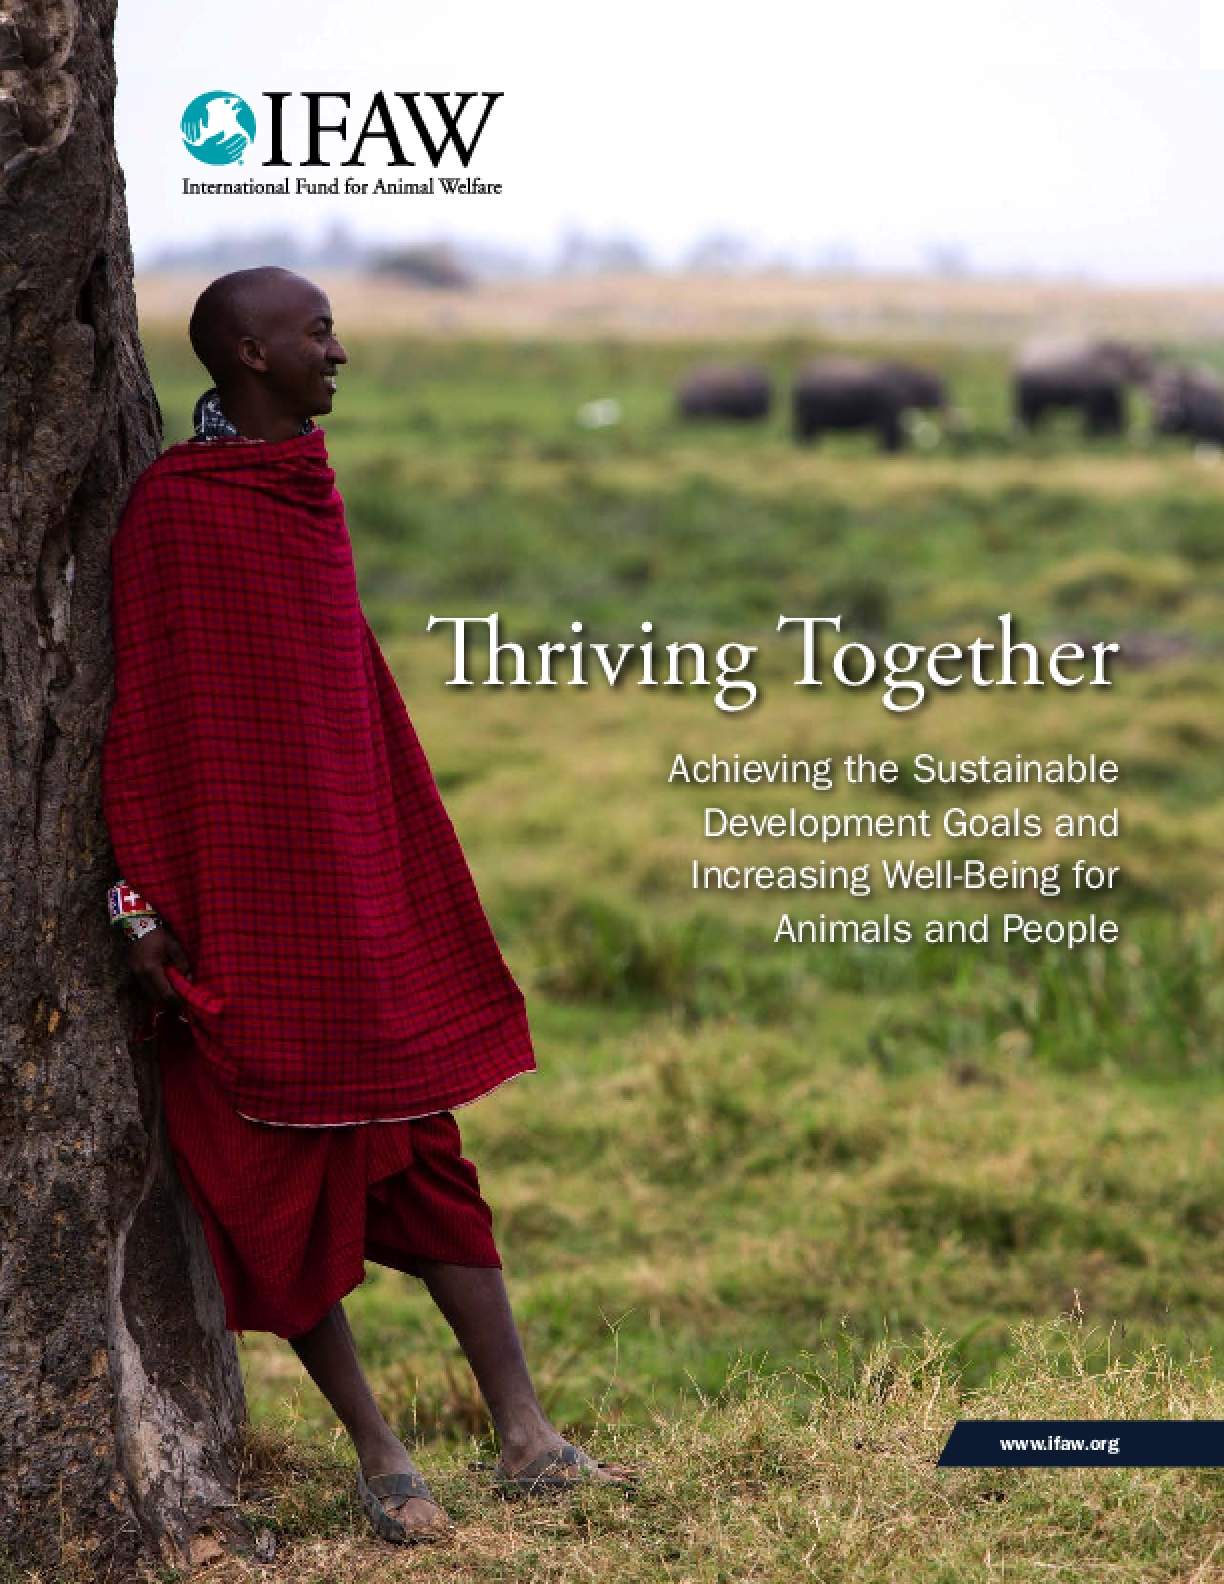 Thriving Together: Achieving the Sustainable Development Goals and Increasing Well-Being for Animals and People